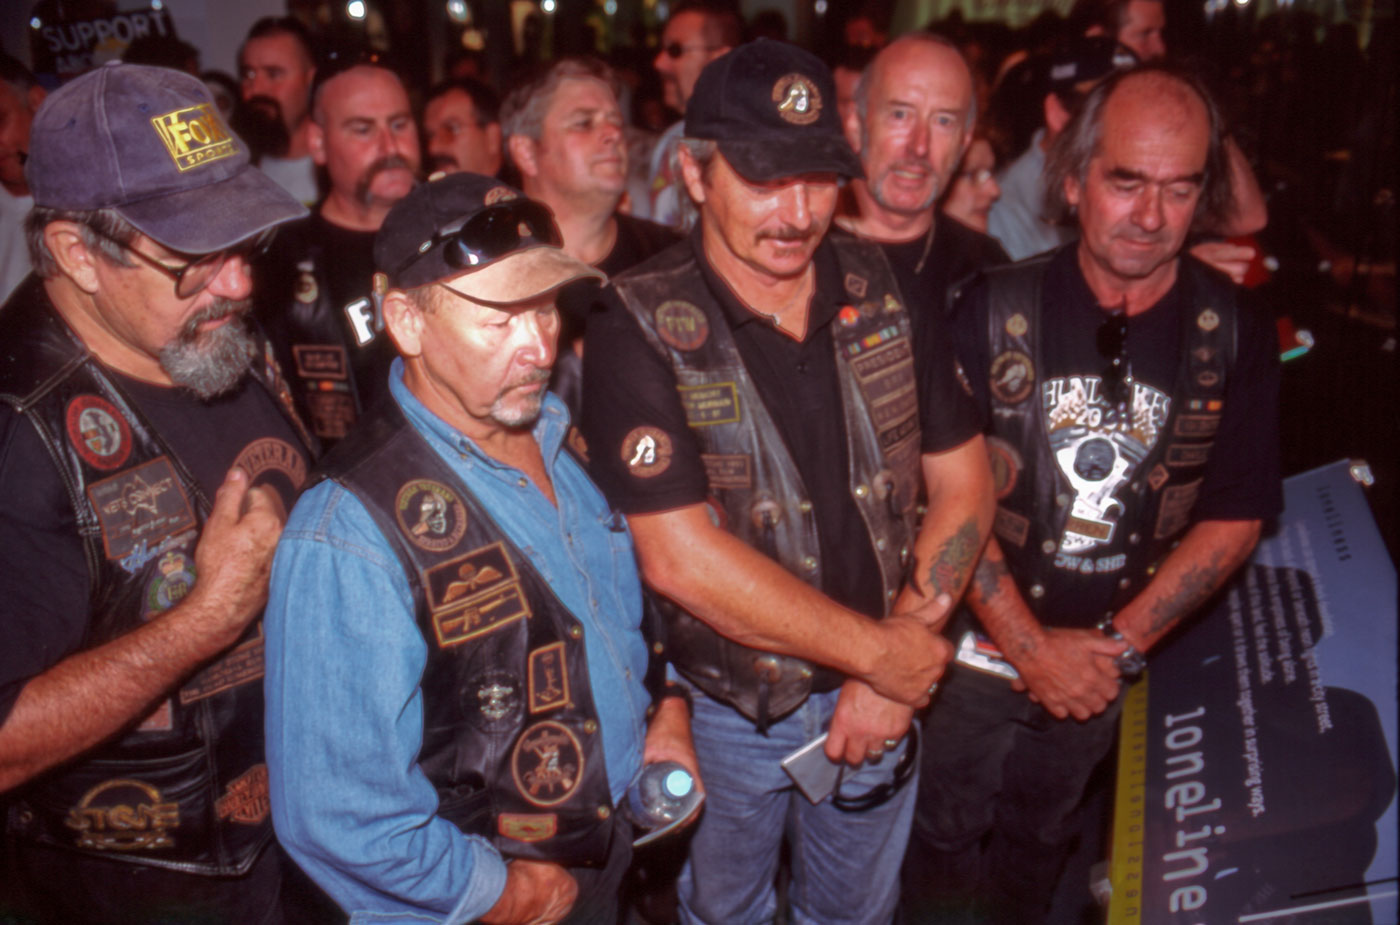 Large group of men wearing leather jackets, inspecting an exhibition display - click to view larger image